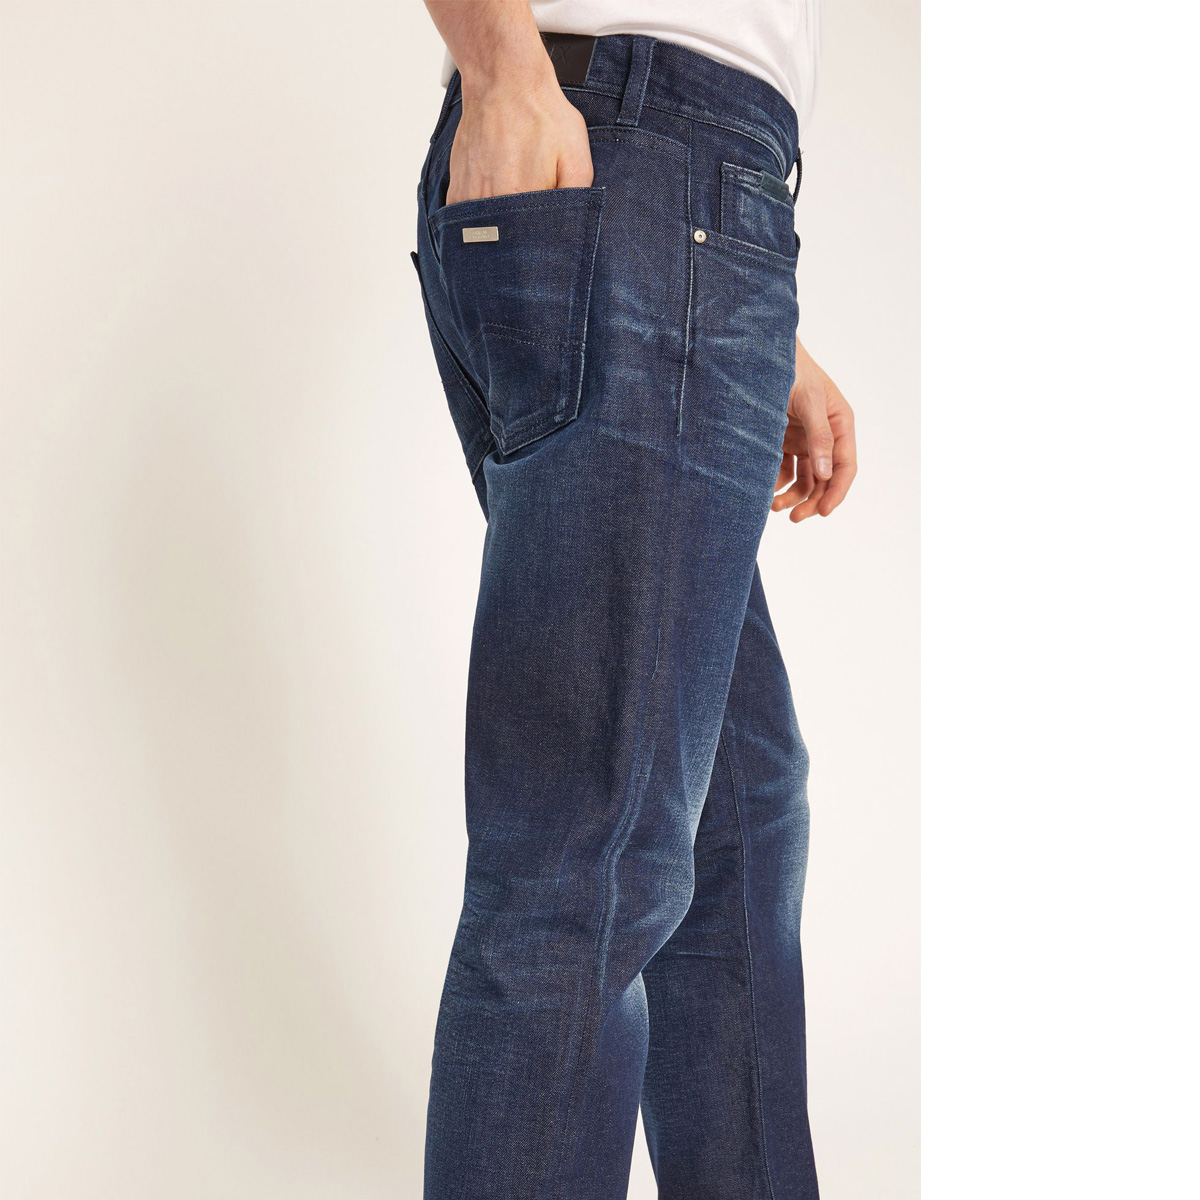 quan-jeans-armani-exchange-straight-25